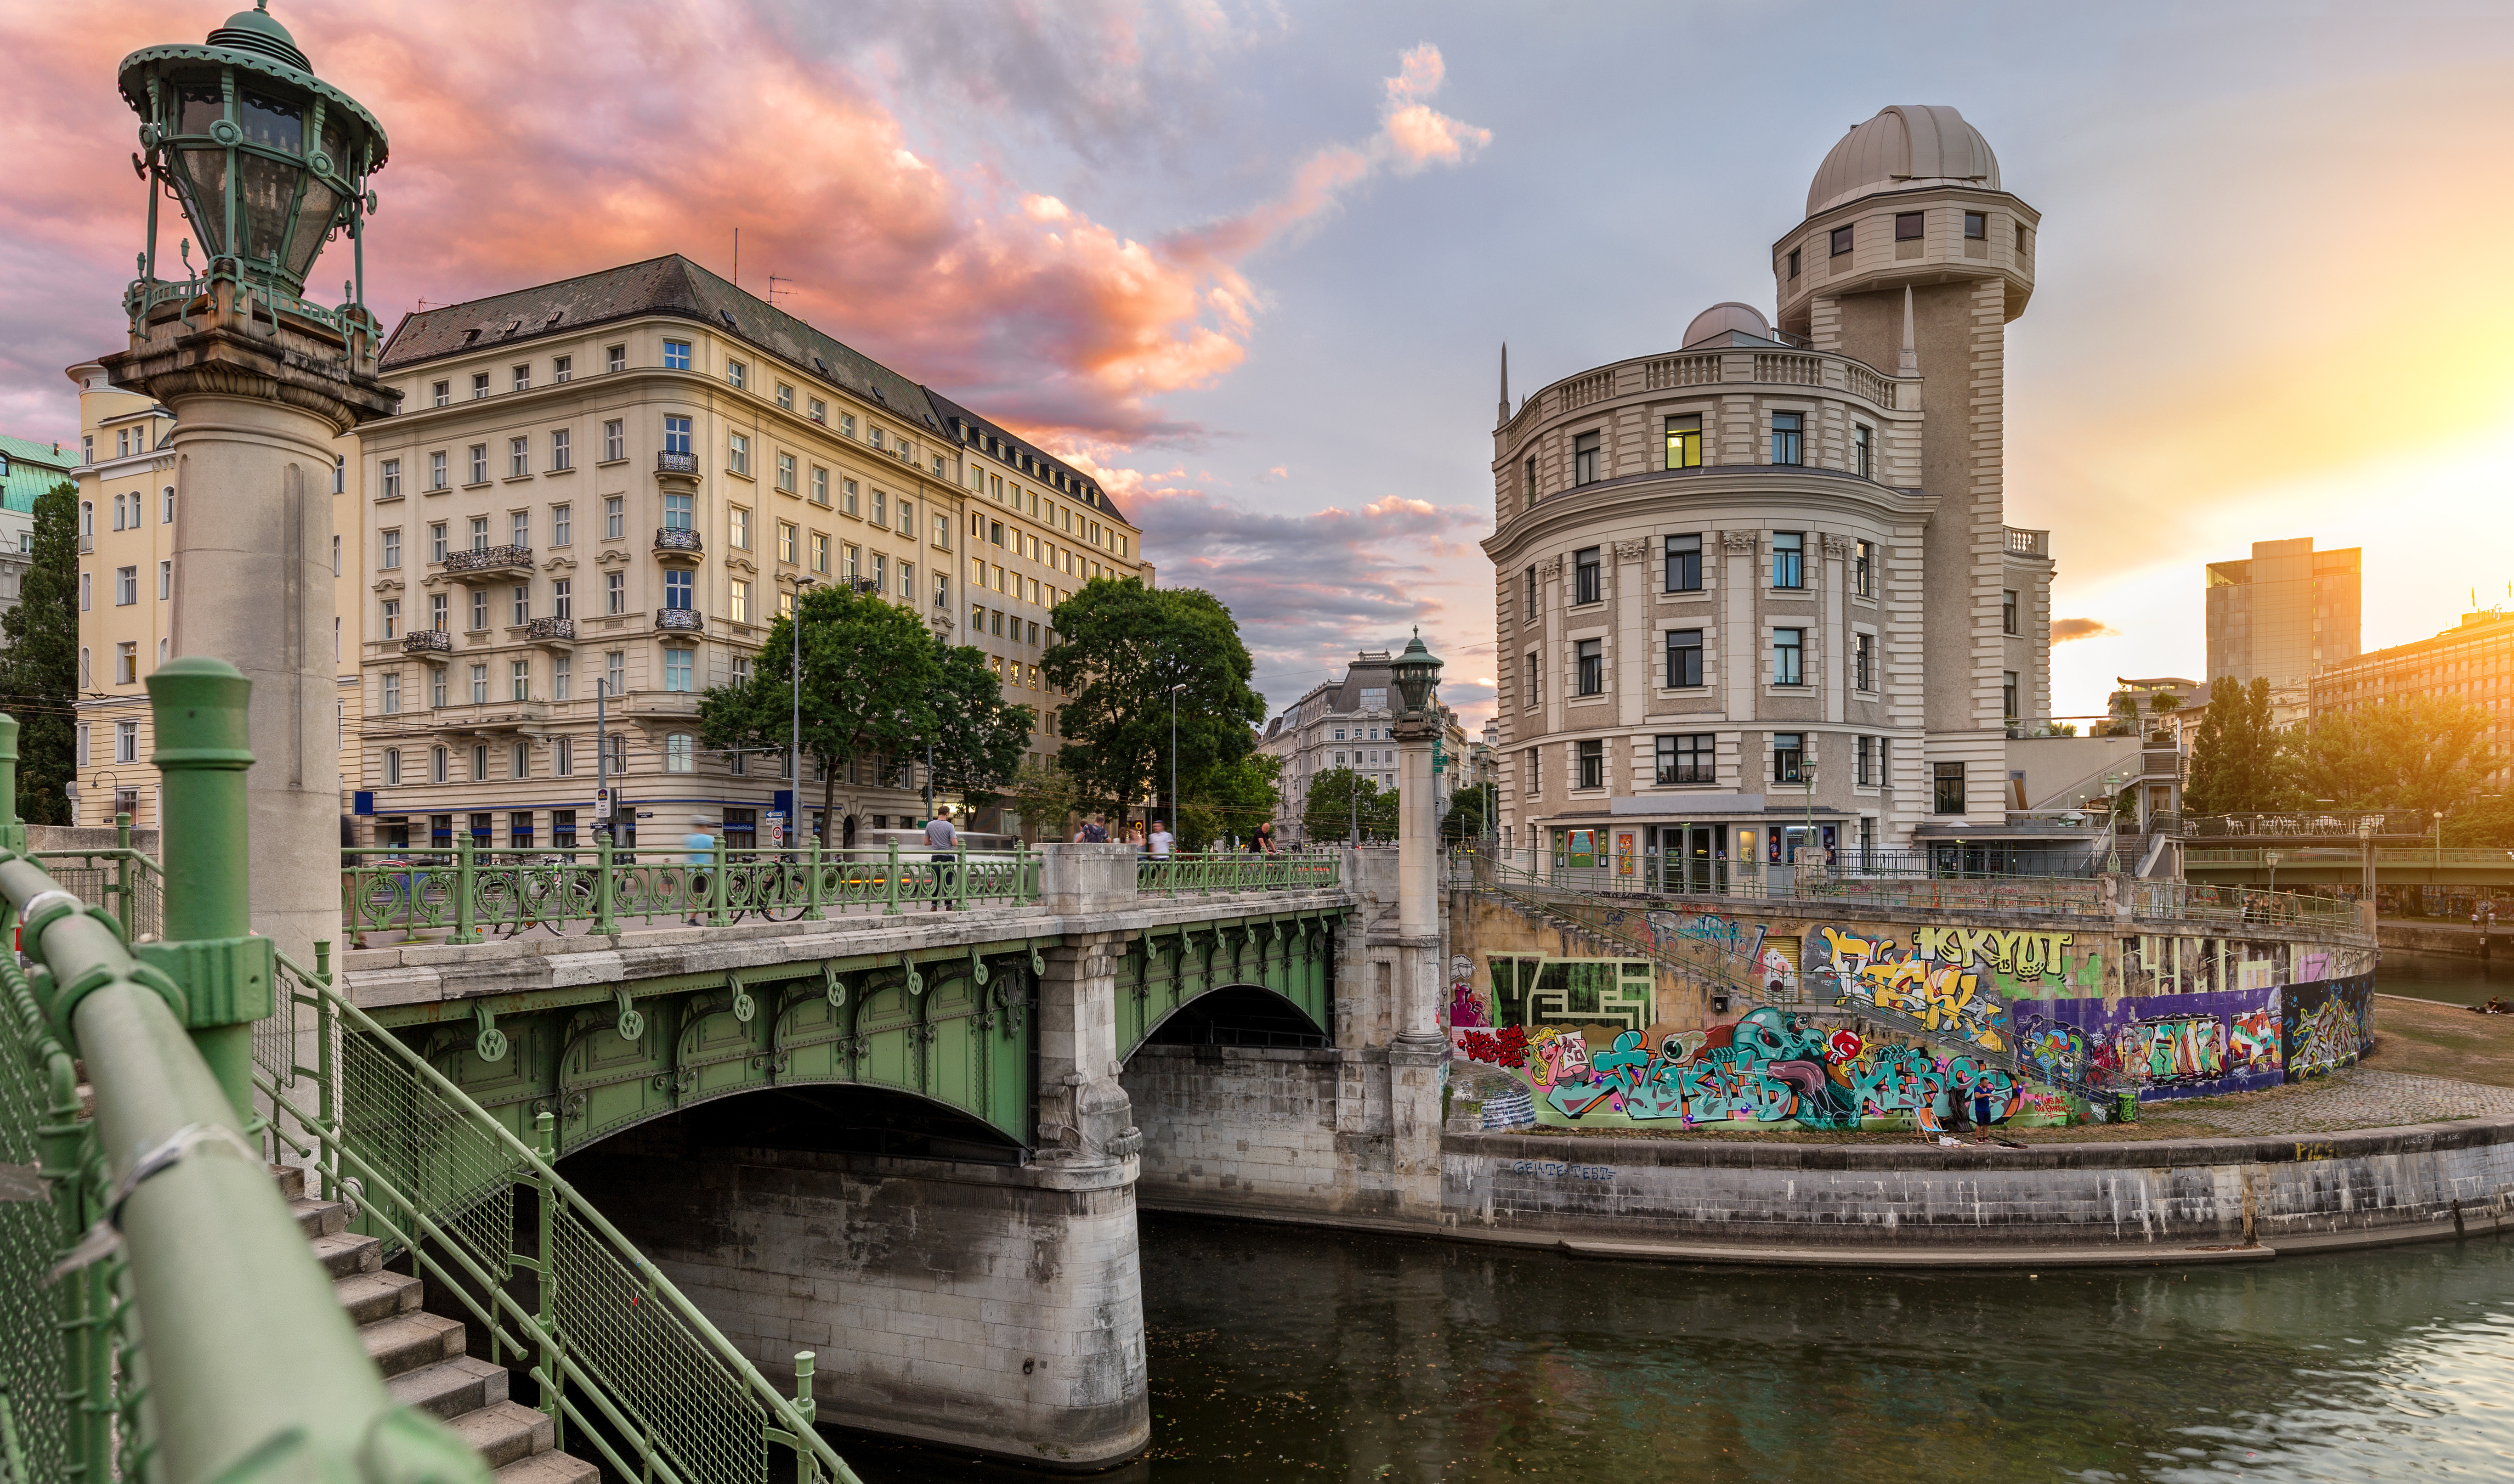 33 things to see and do in Vienna